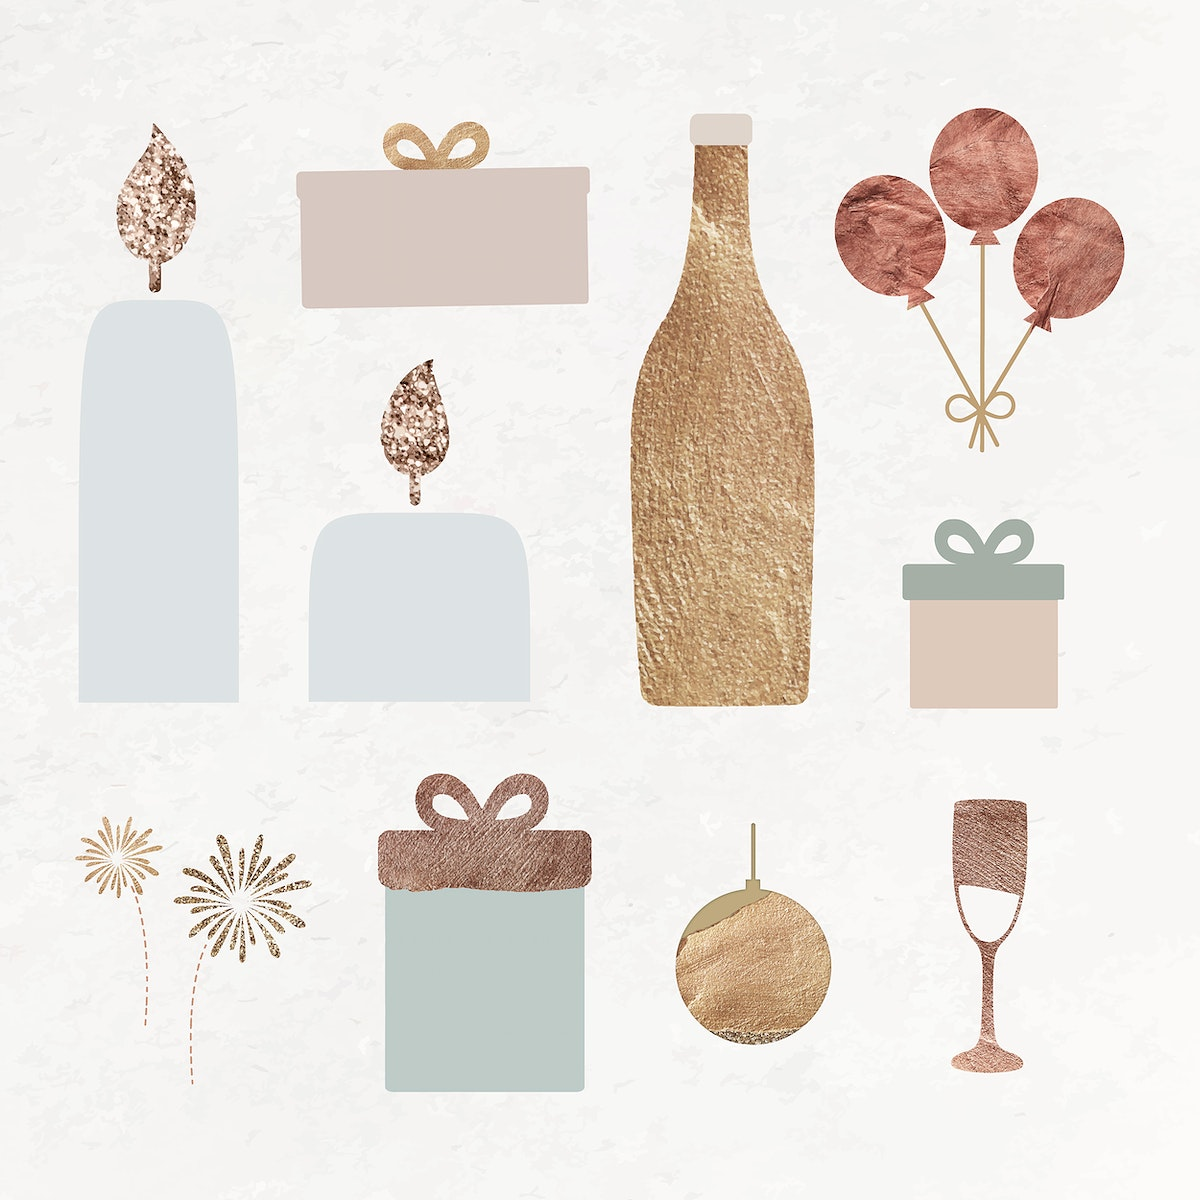 New Year pillar candles, wine bottle, gift boxes, balloons, wine glass, gold ball and fireworks doodle on textured background…